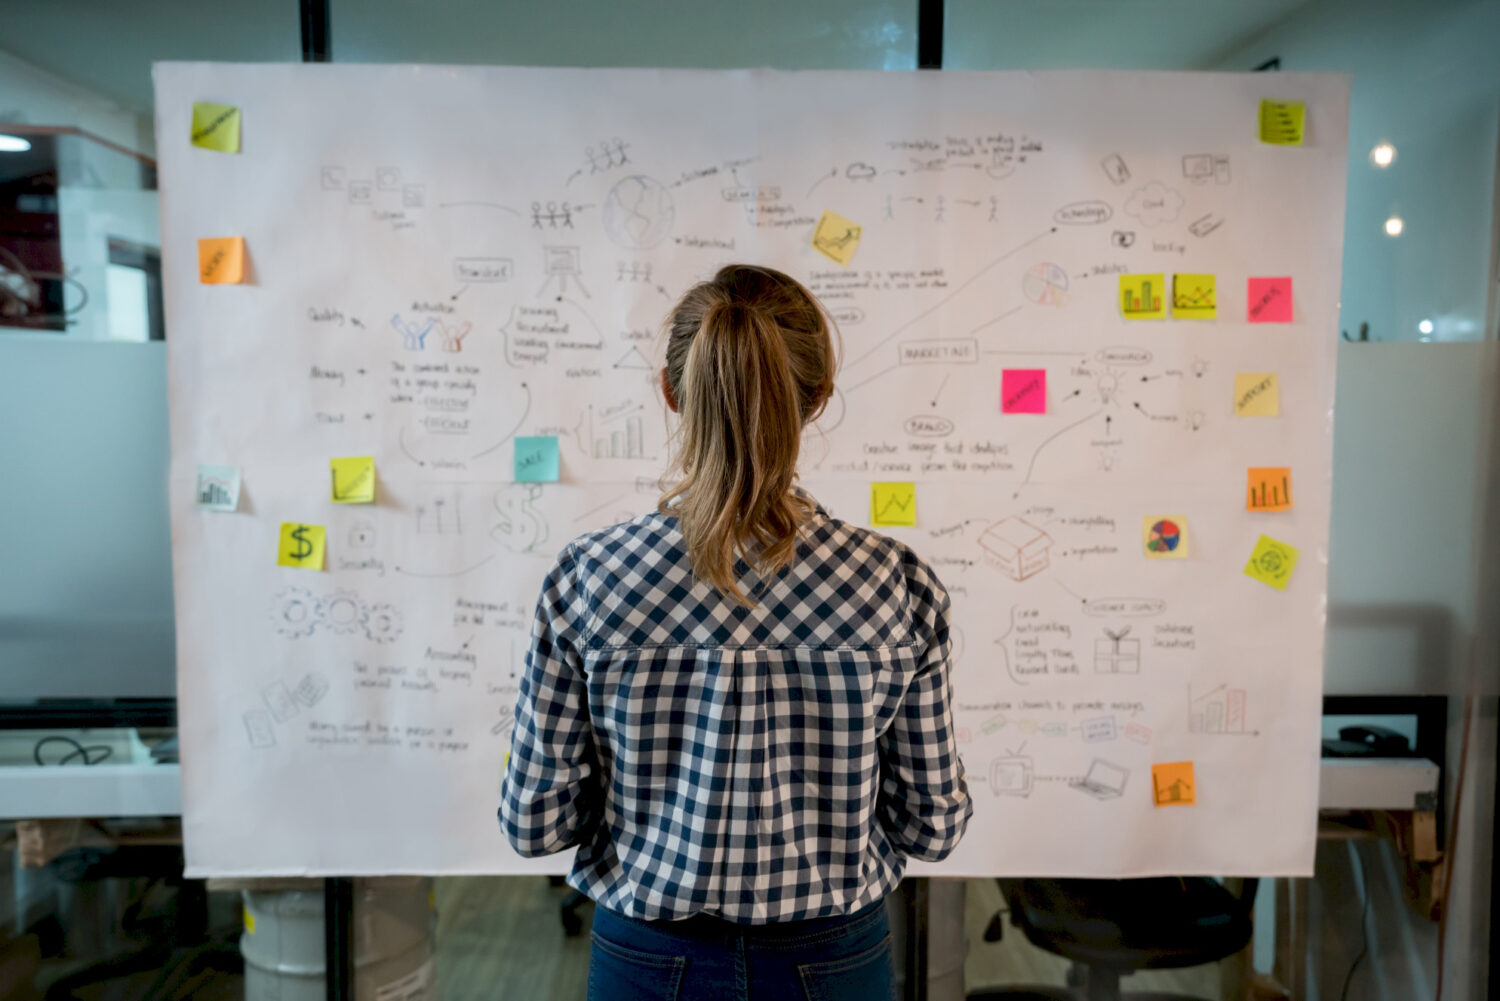 Save time developing your business strategy with an Innovation Workout